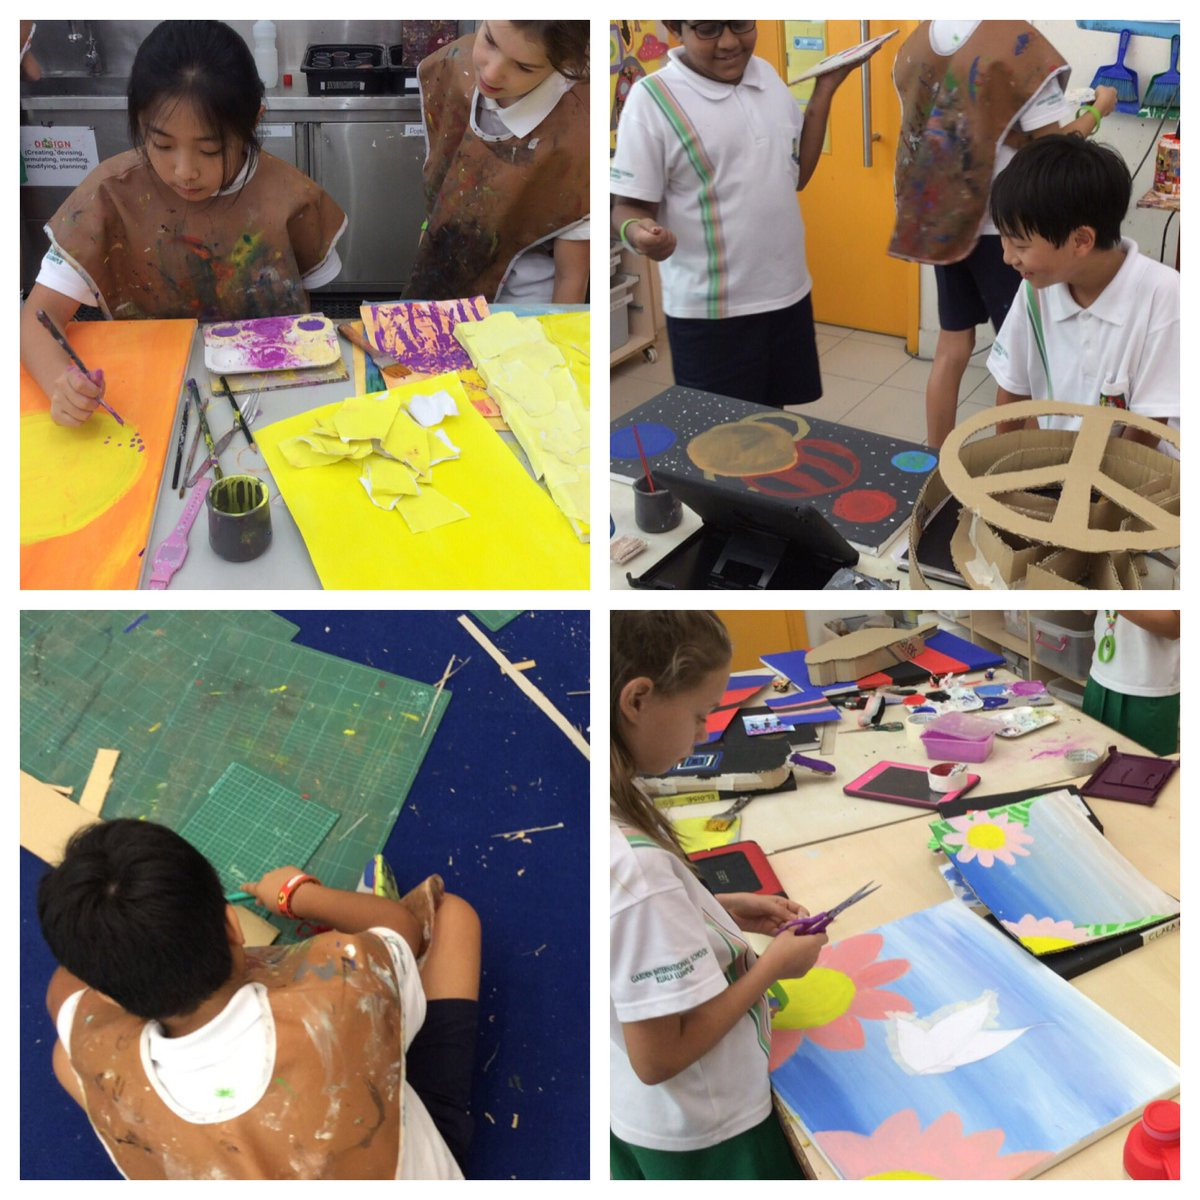 It's an honor to watch year 6 produce the final pieces at the end of their creative journey. The exhibition, with their e-books to explain their learning process, is going to be amazing  #GISlearning @rocco_gianluca<br>http://pic.twitter.com/lDpmVE0VLQ